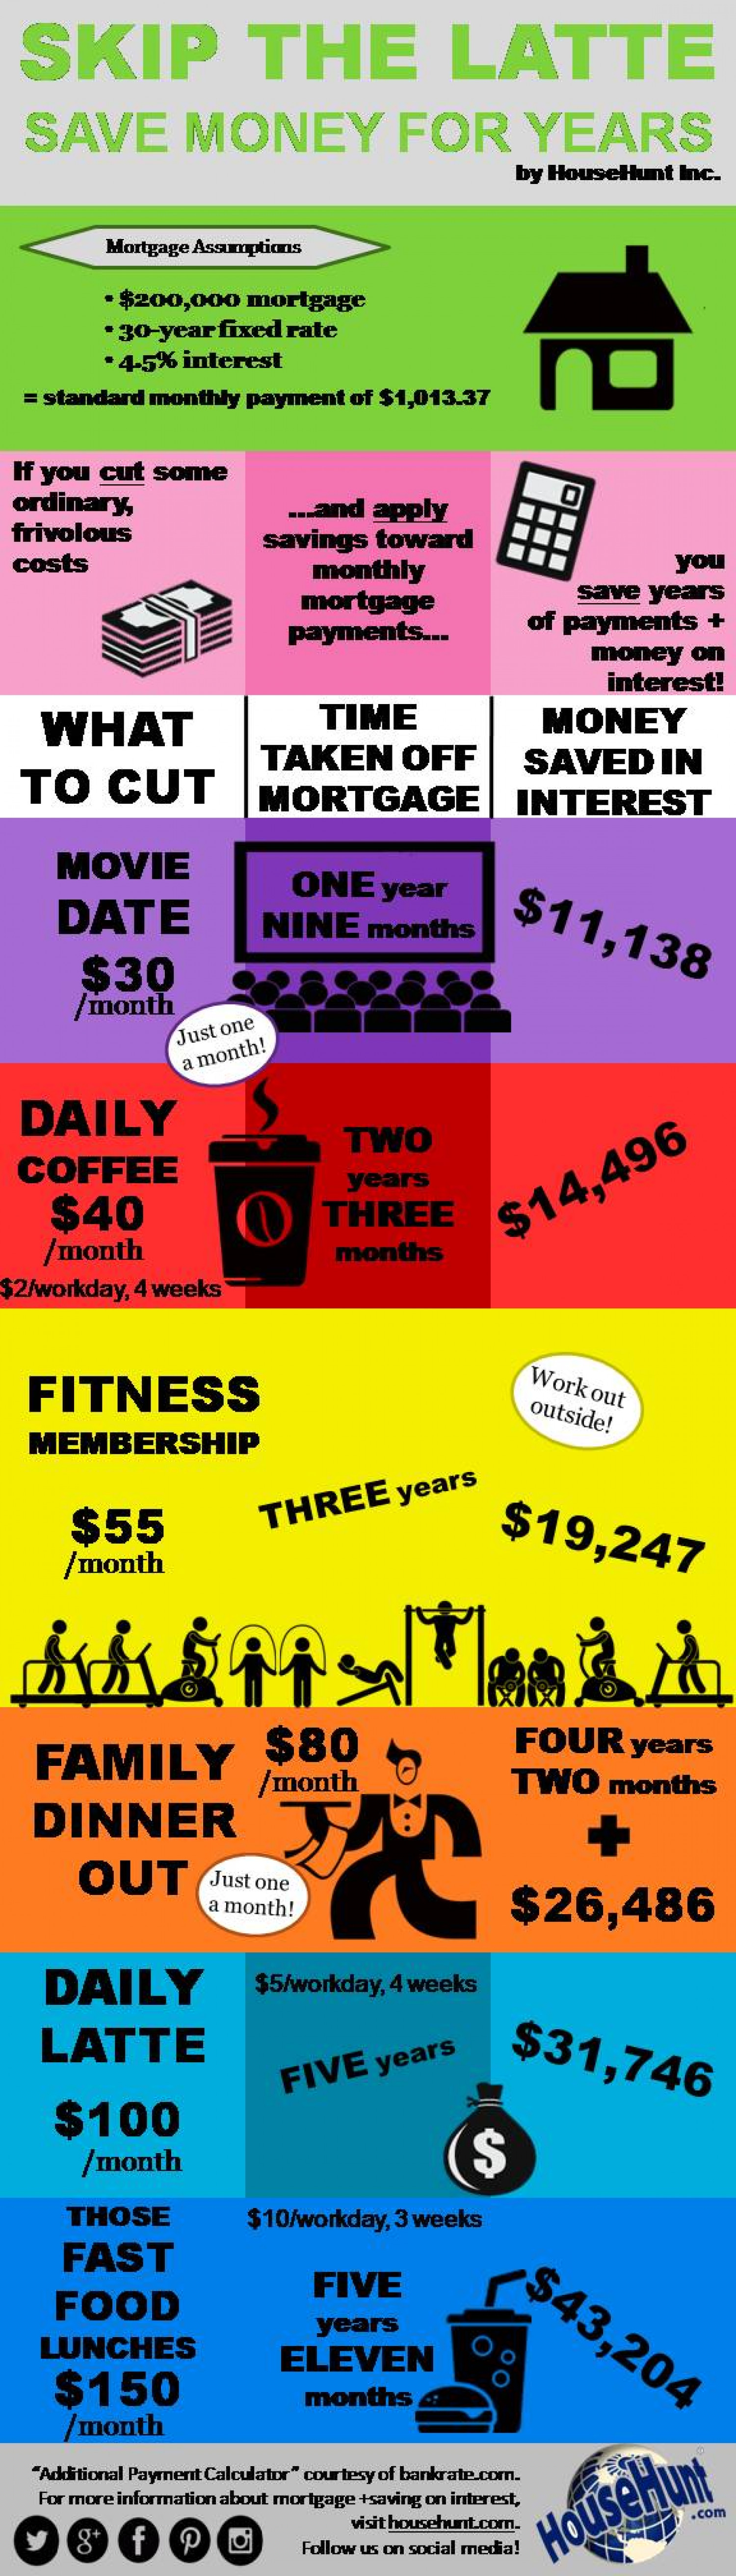 Skip The Latte Save Money For Years Infographic